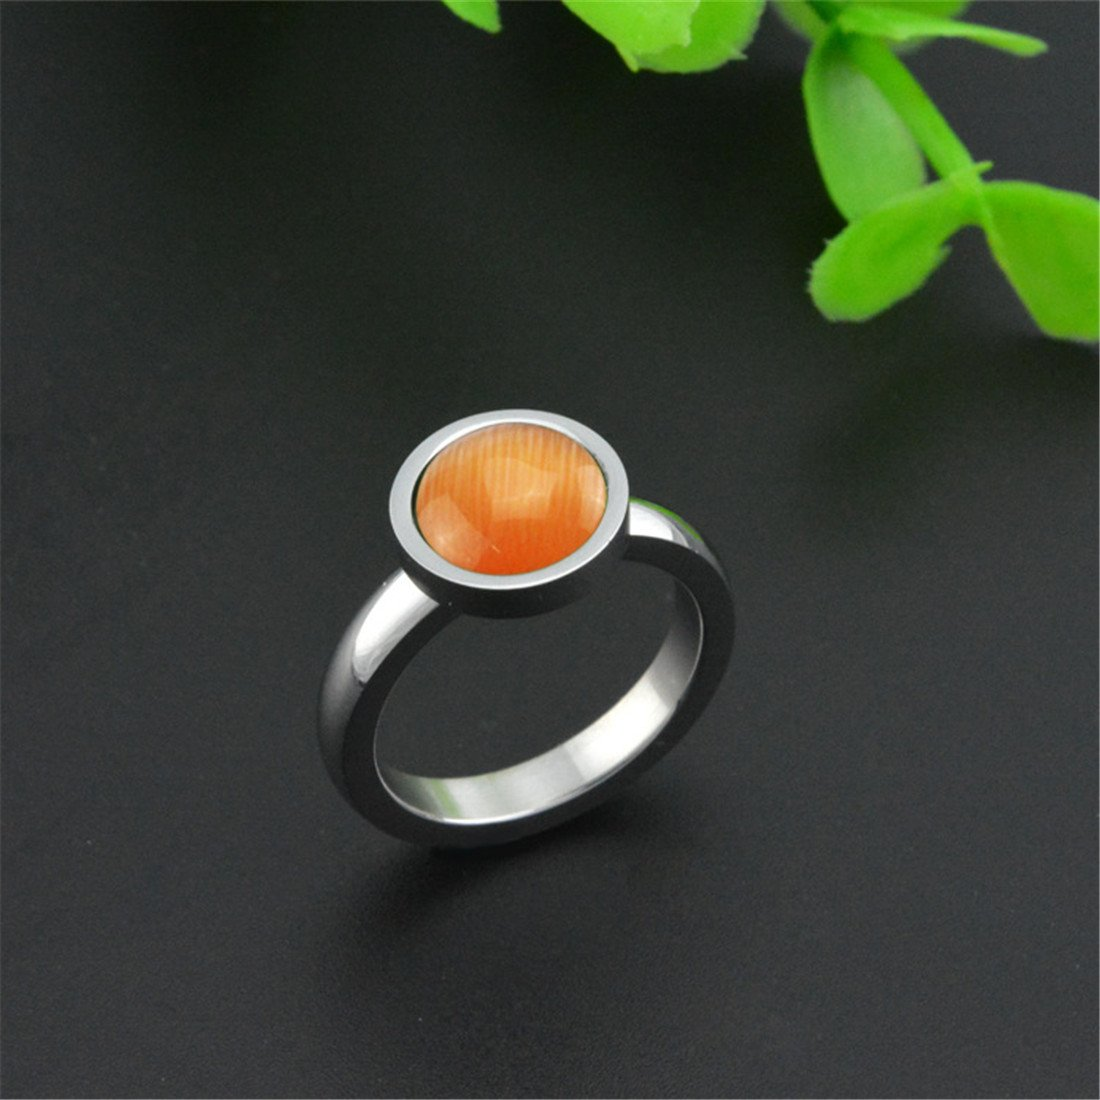 XIMAKA Womens Wedding Bands Inlaid Cats Eye Stone 316l Stainless Steel Ring,Orange,Size 5